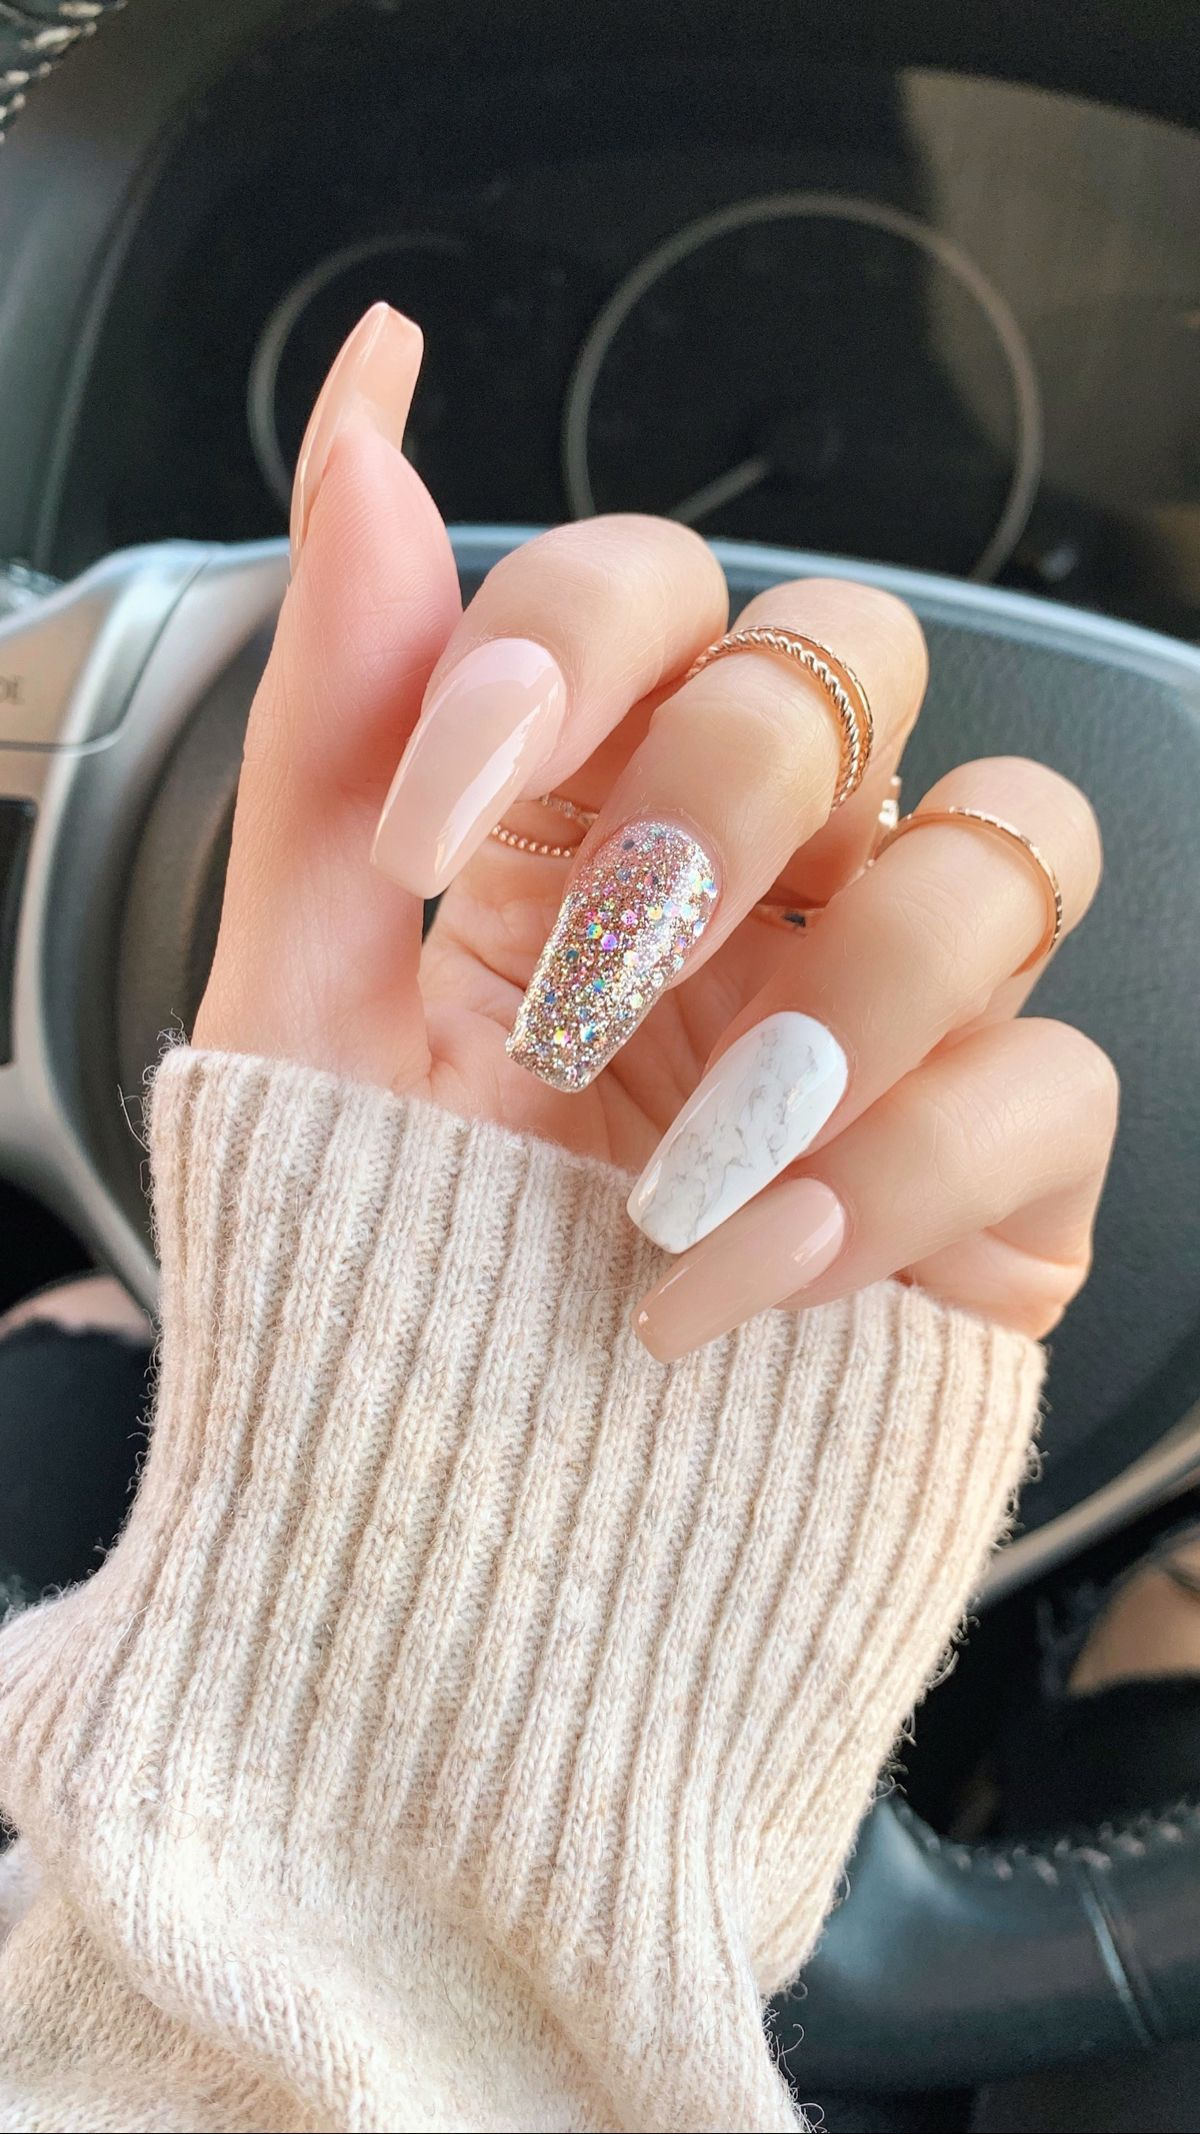 50+ Charming Acrylic Nail Designs to Try Right Now – Page 200 of 200 – CoCohots